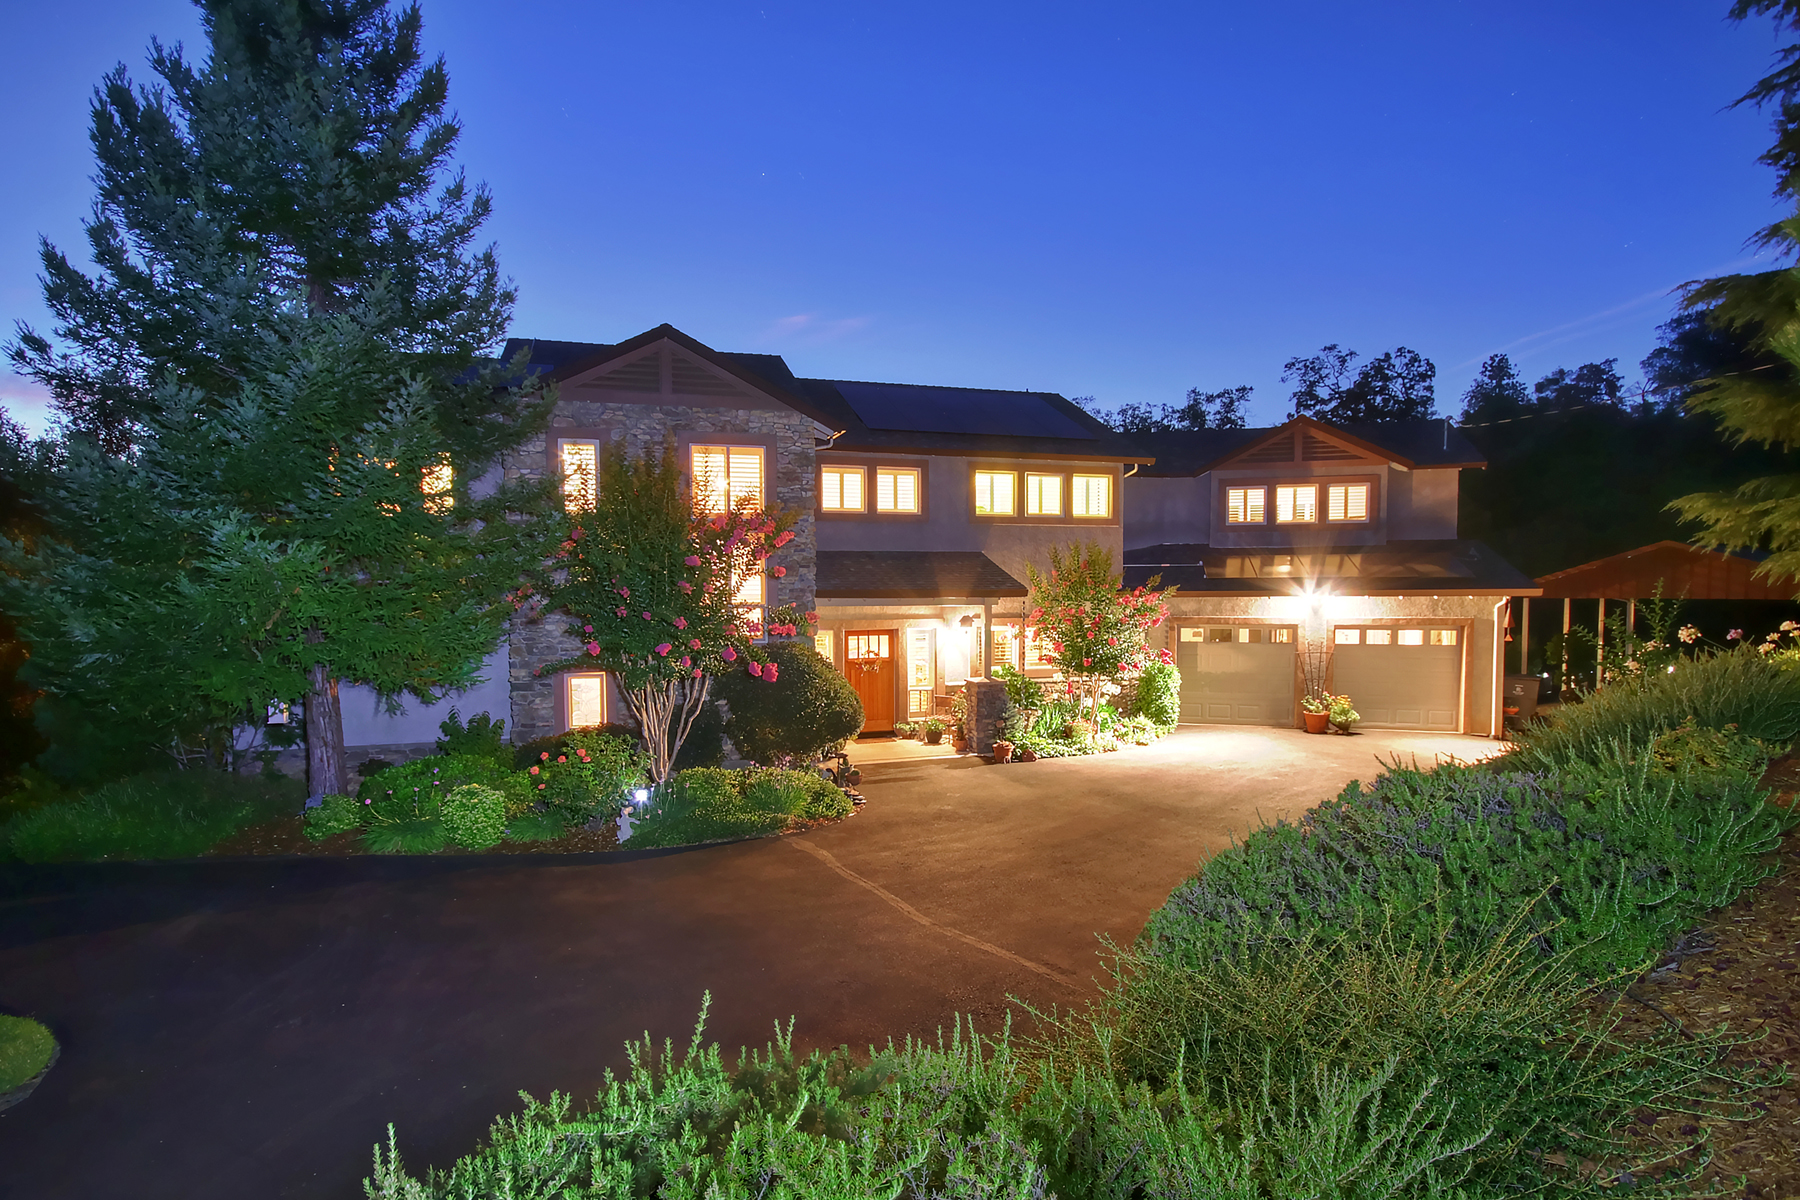 Single Family Home for Active at 2000 Toscana Place, Auburn, CA 95603 2000 Toscana Place Auburn, California 95603 United States